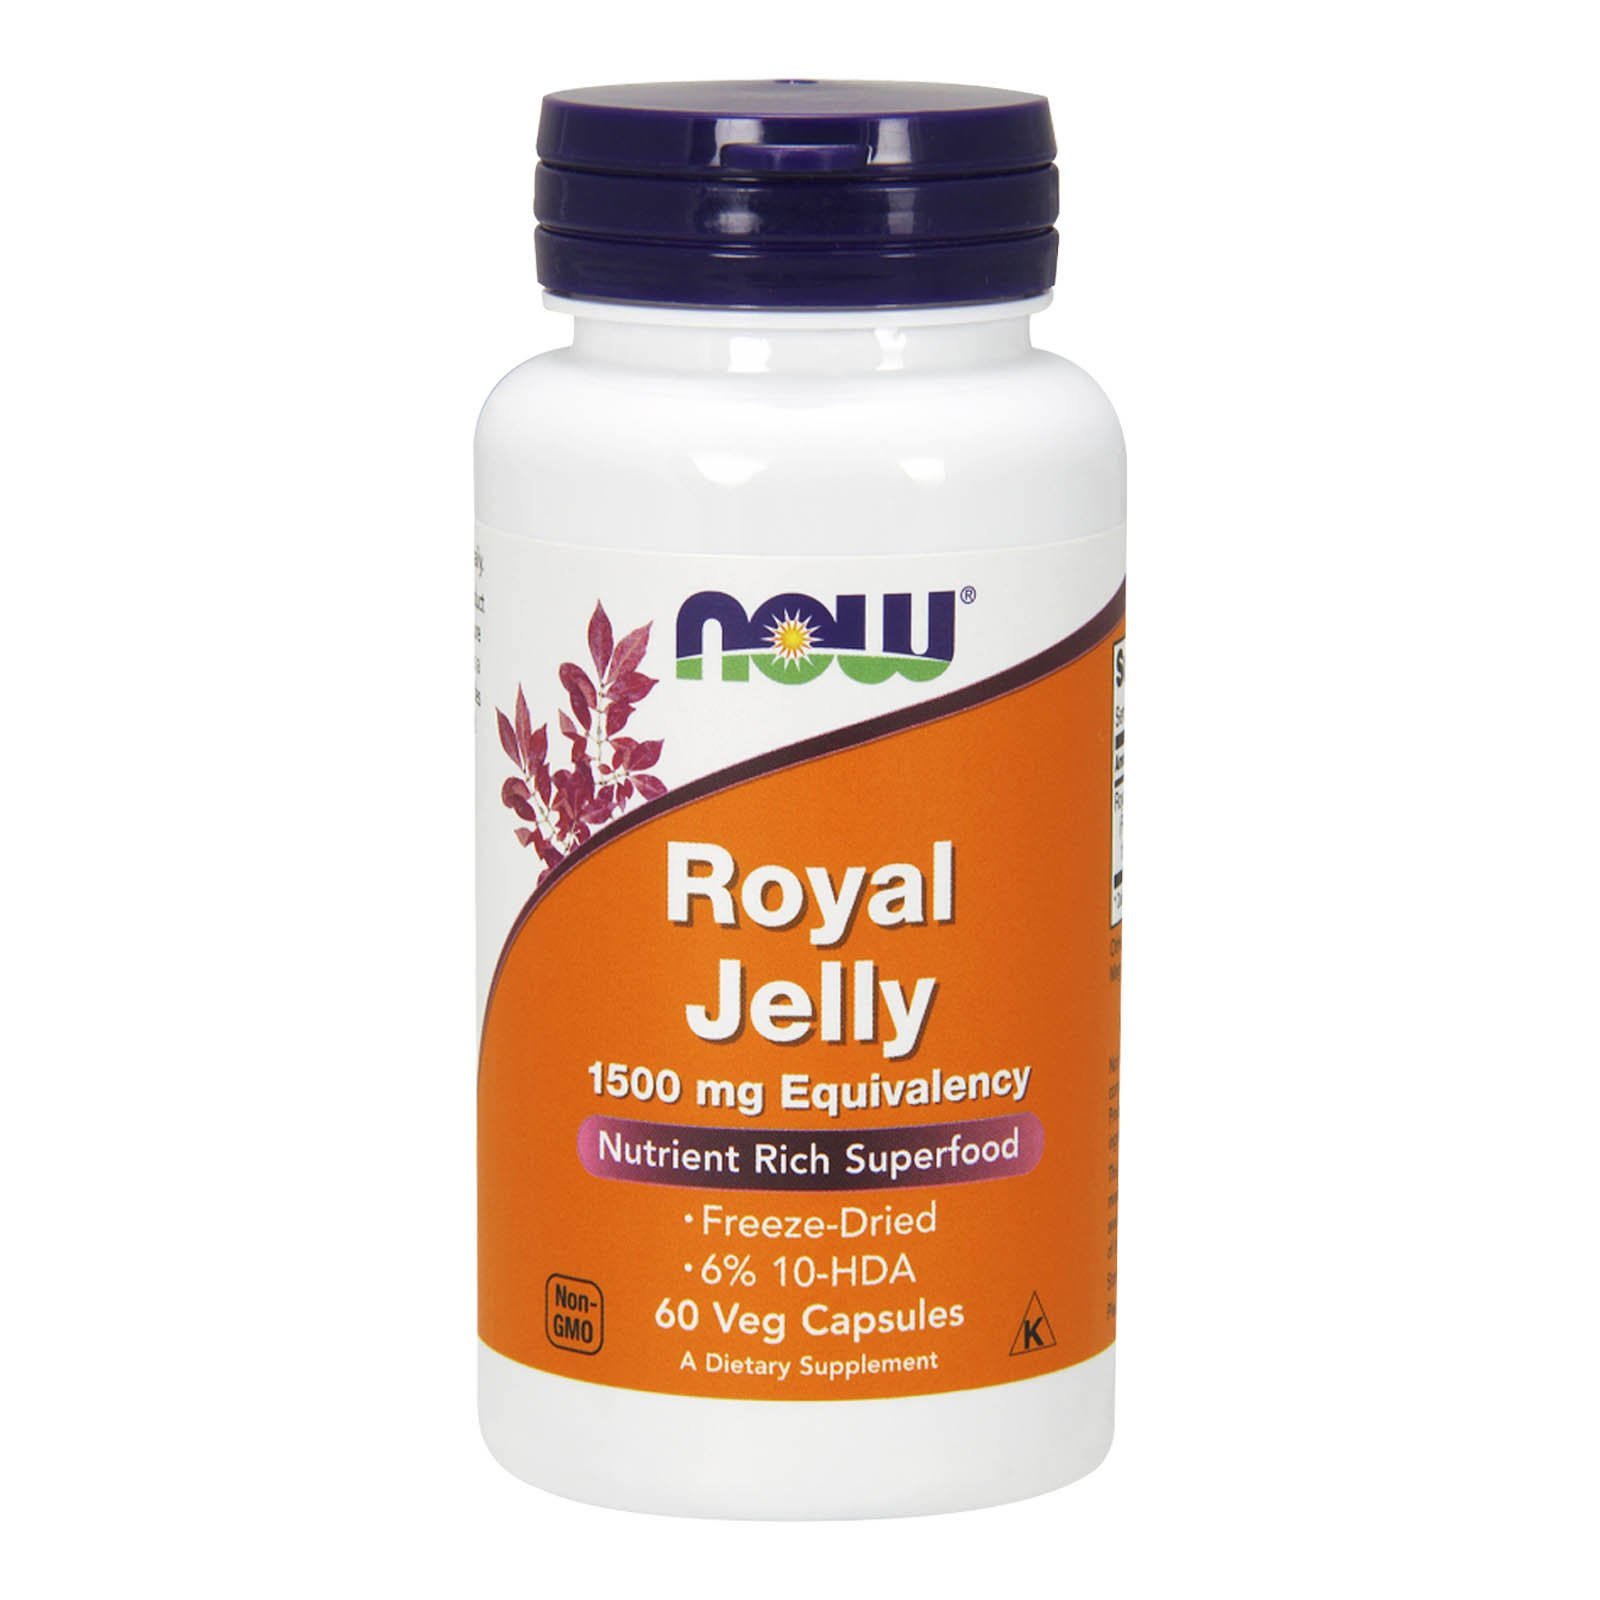 Now Foods Royal Jelly Supplement - 60 Capsules